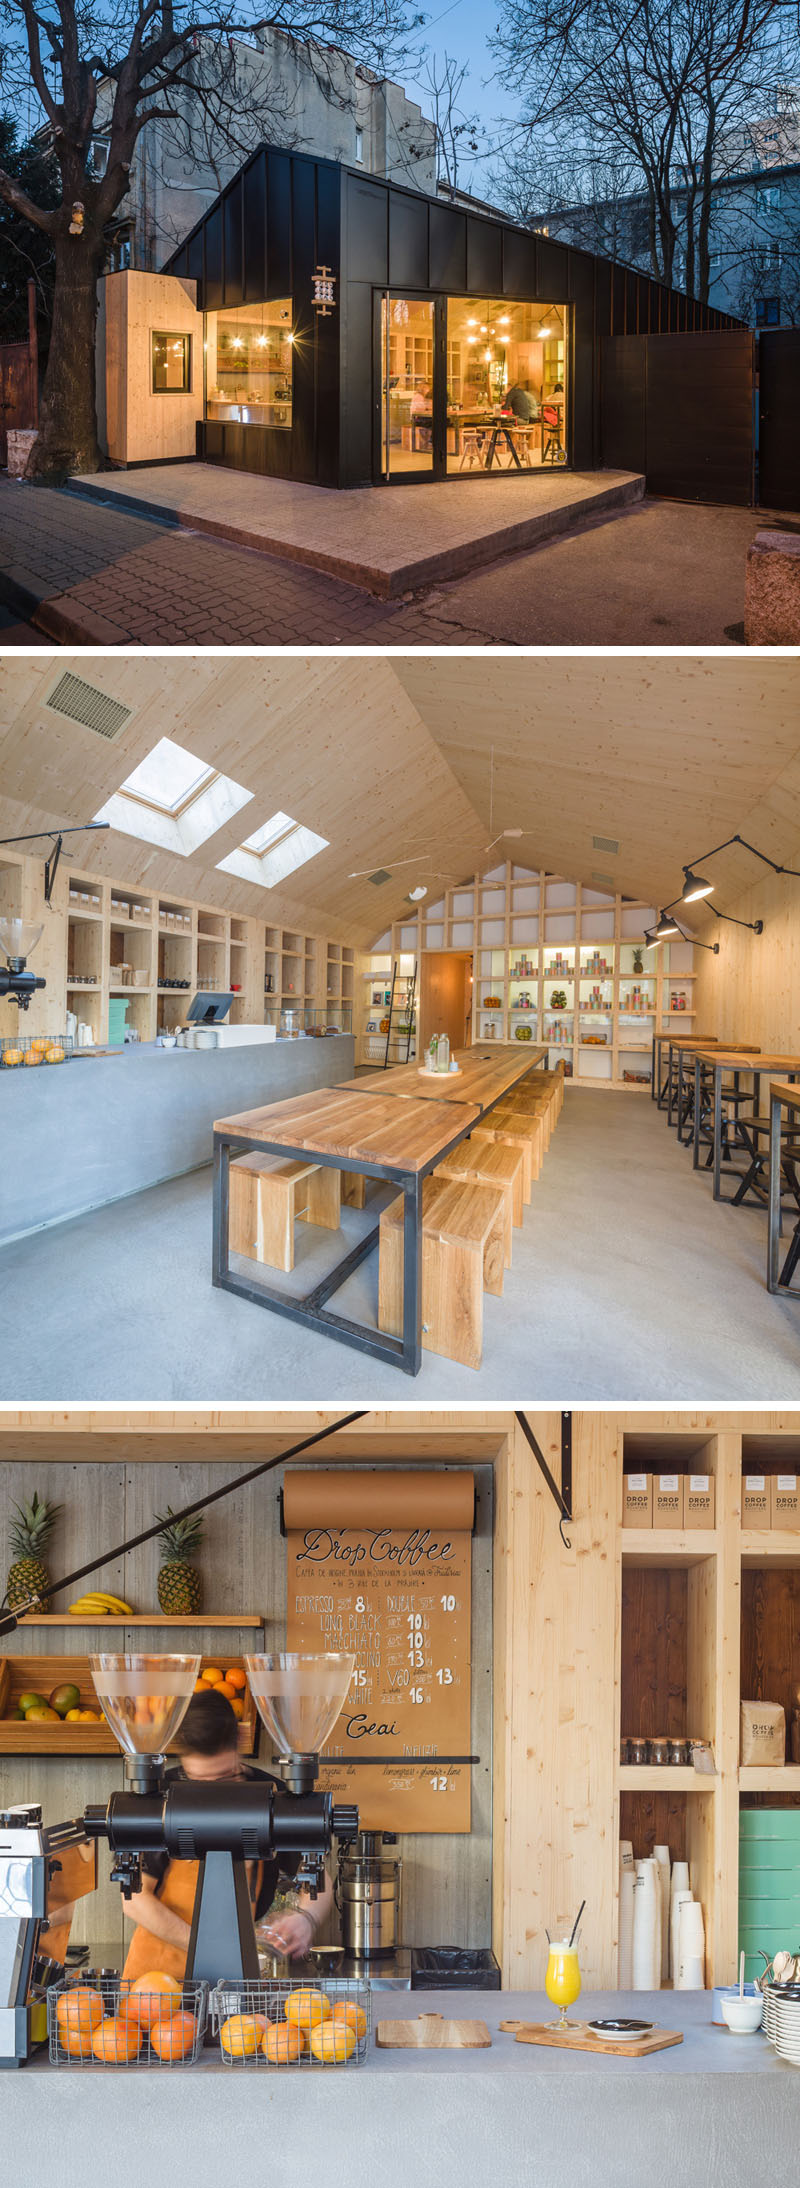 Not A Number Architects Designed Fudisiac, A Juice Bar And Cafe In  Bucharest, Romania With A Simple Wood, Steel, And Concrete Interior That  Showcases Their ...